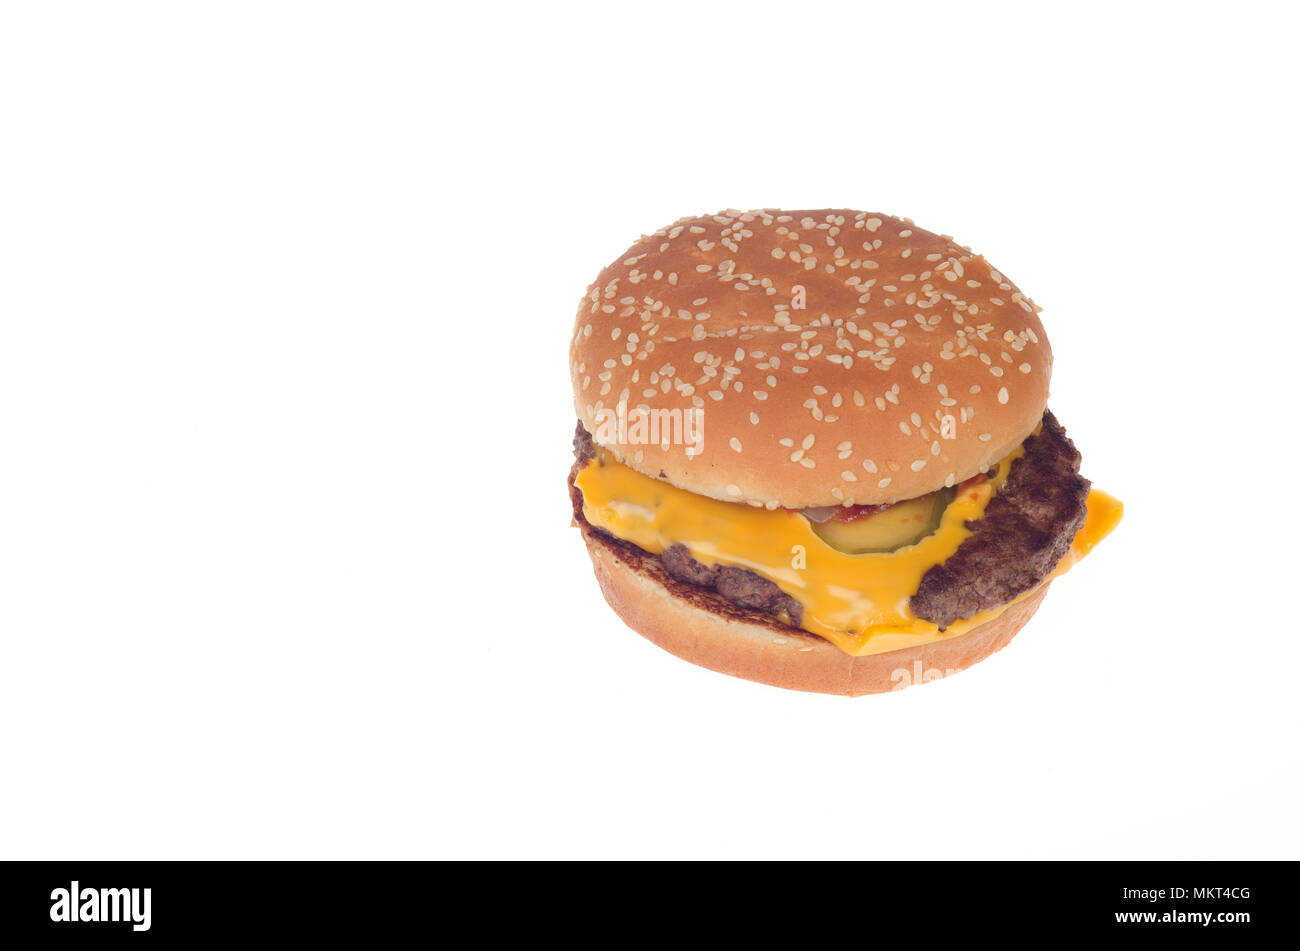 McDonald's new fresh beef quarter pounder with cheese cooked when ordered not frozen. McDonald's rolled out this fresh beef burger nationally in May 2 - Stock Image